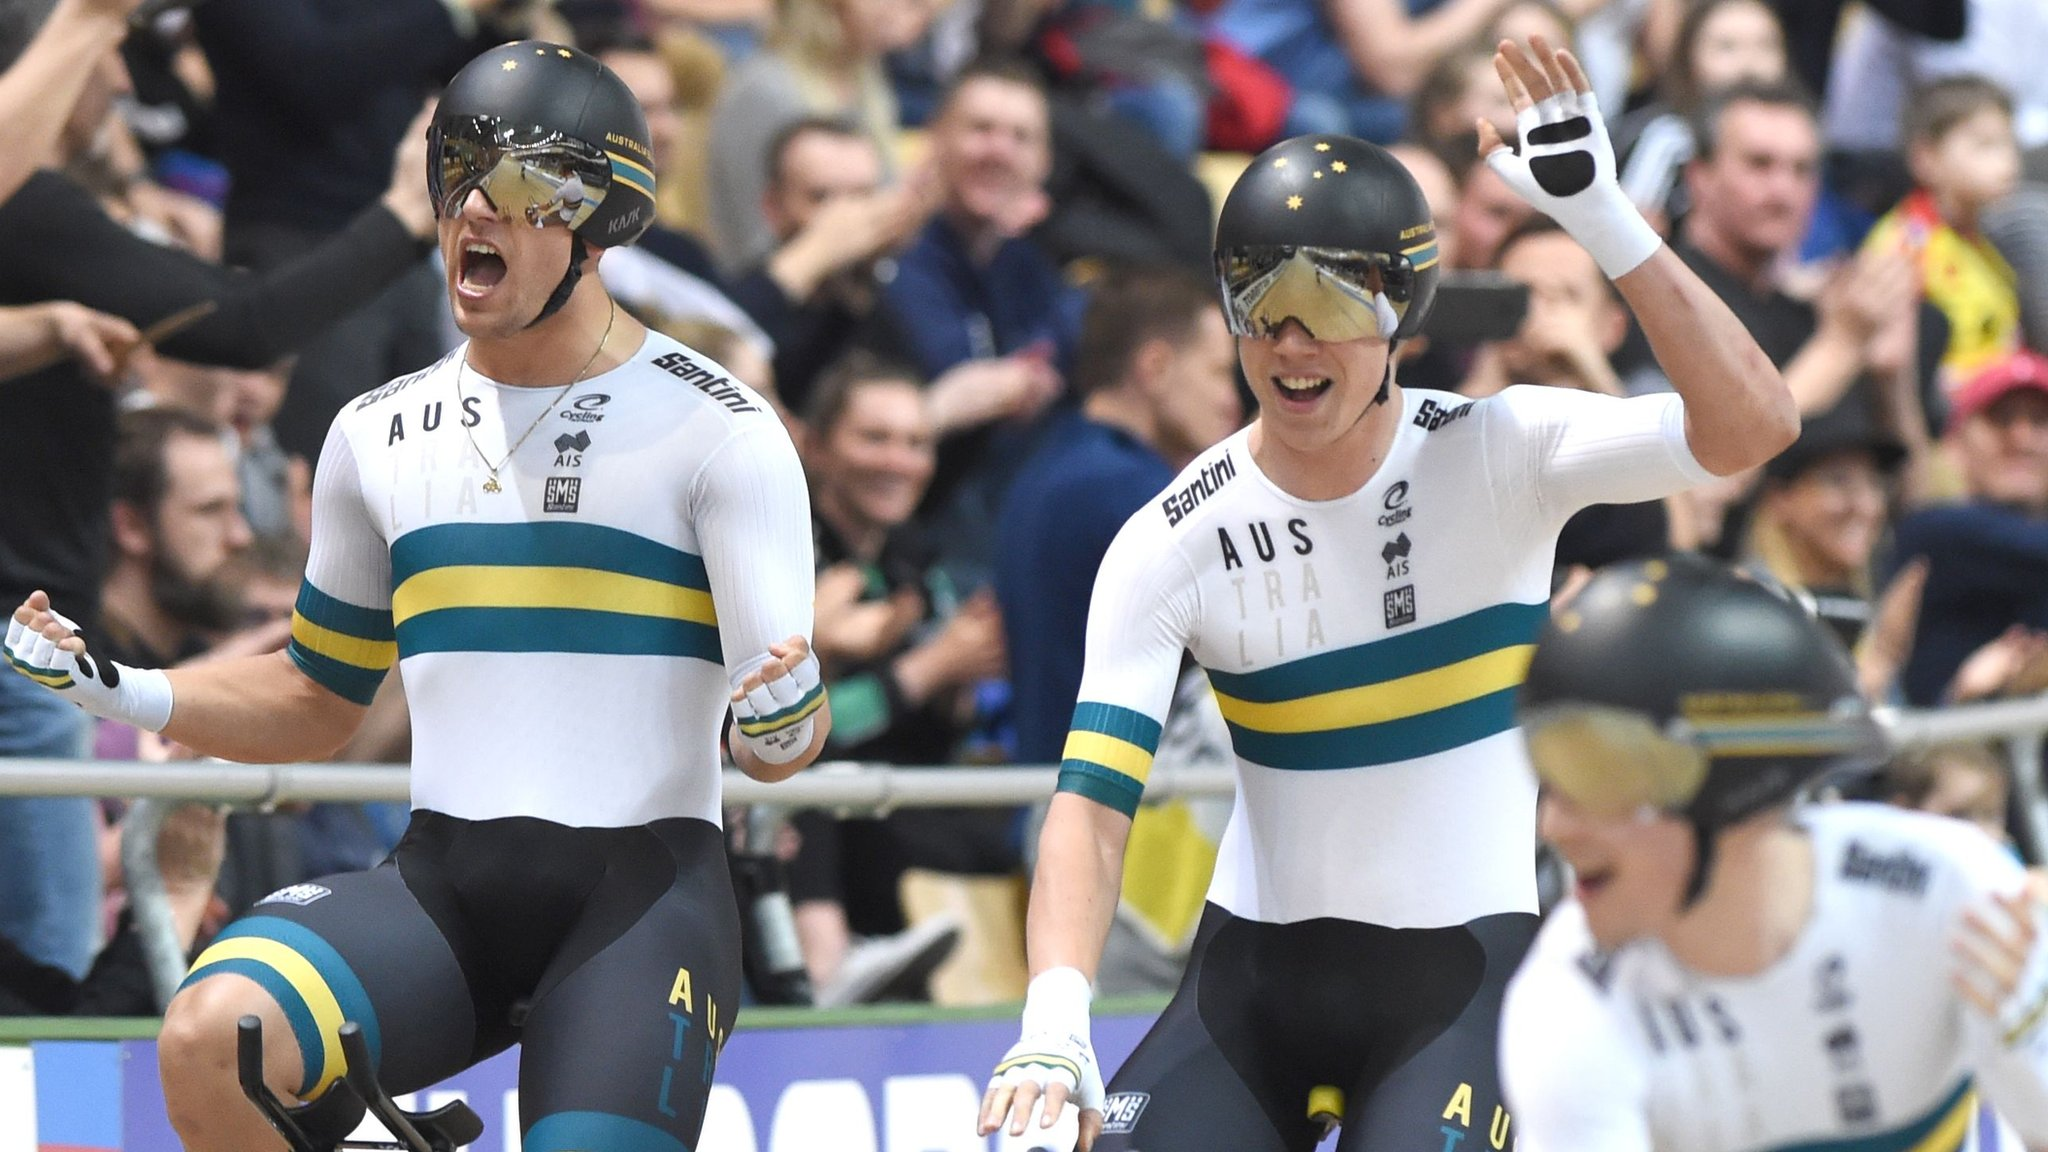 2019 Track Cycling World Championships: Great Britain take silver as Australia smash team pursuit world record